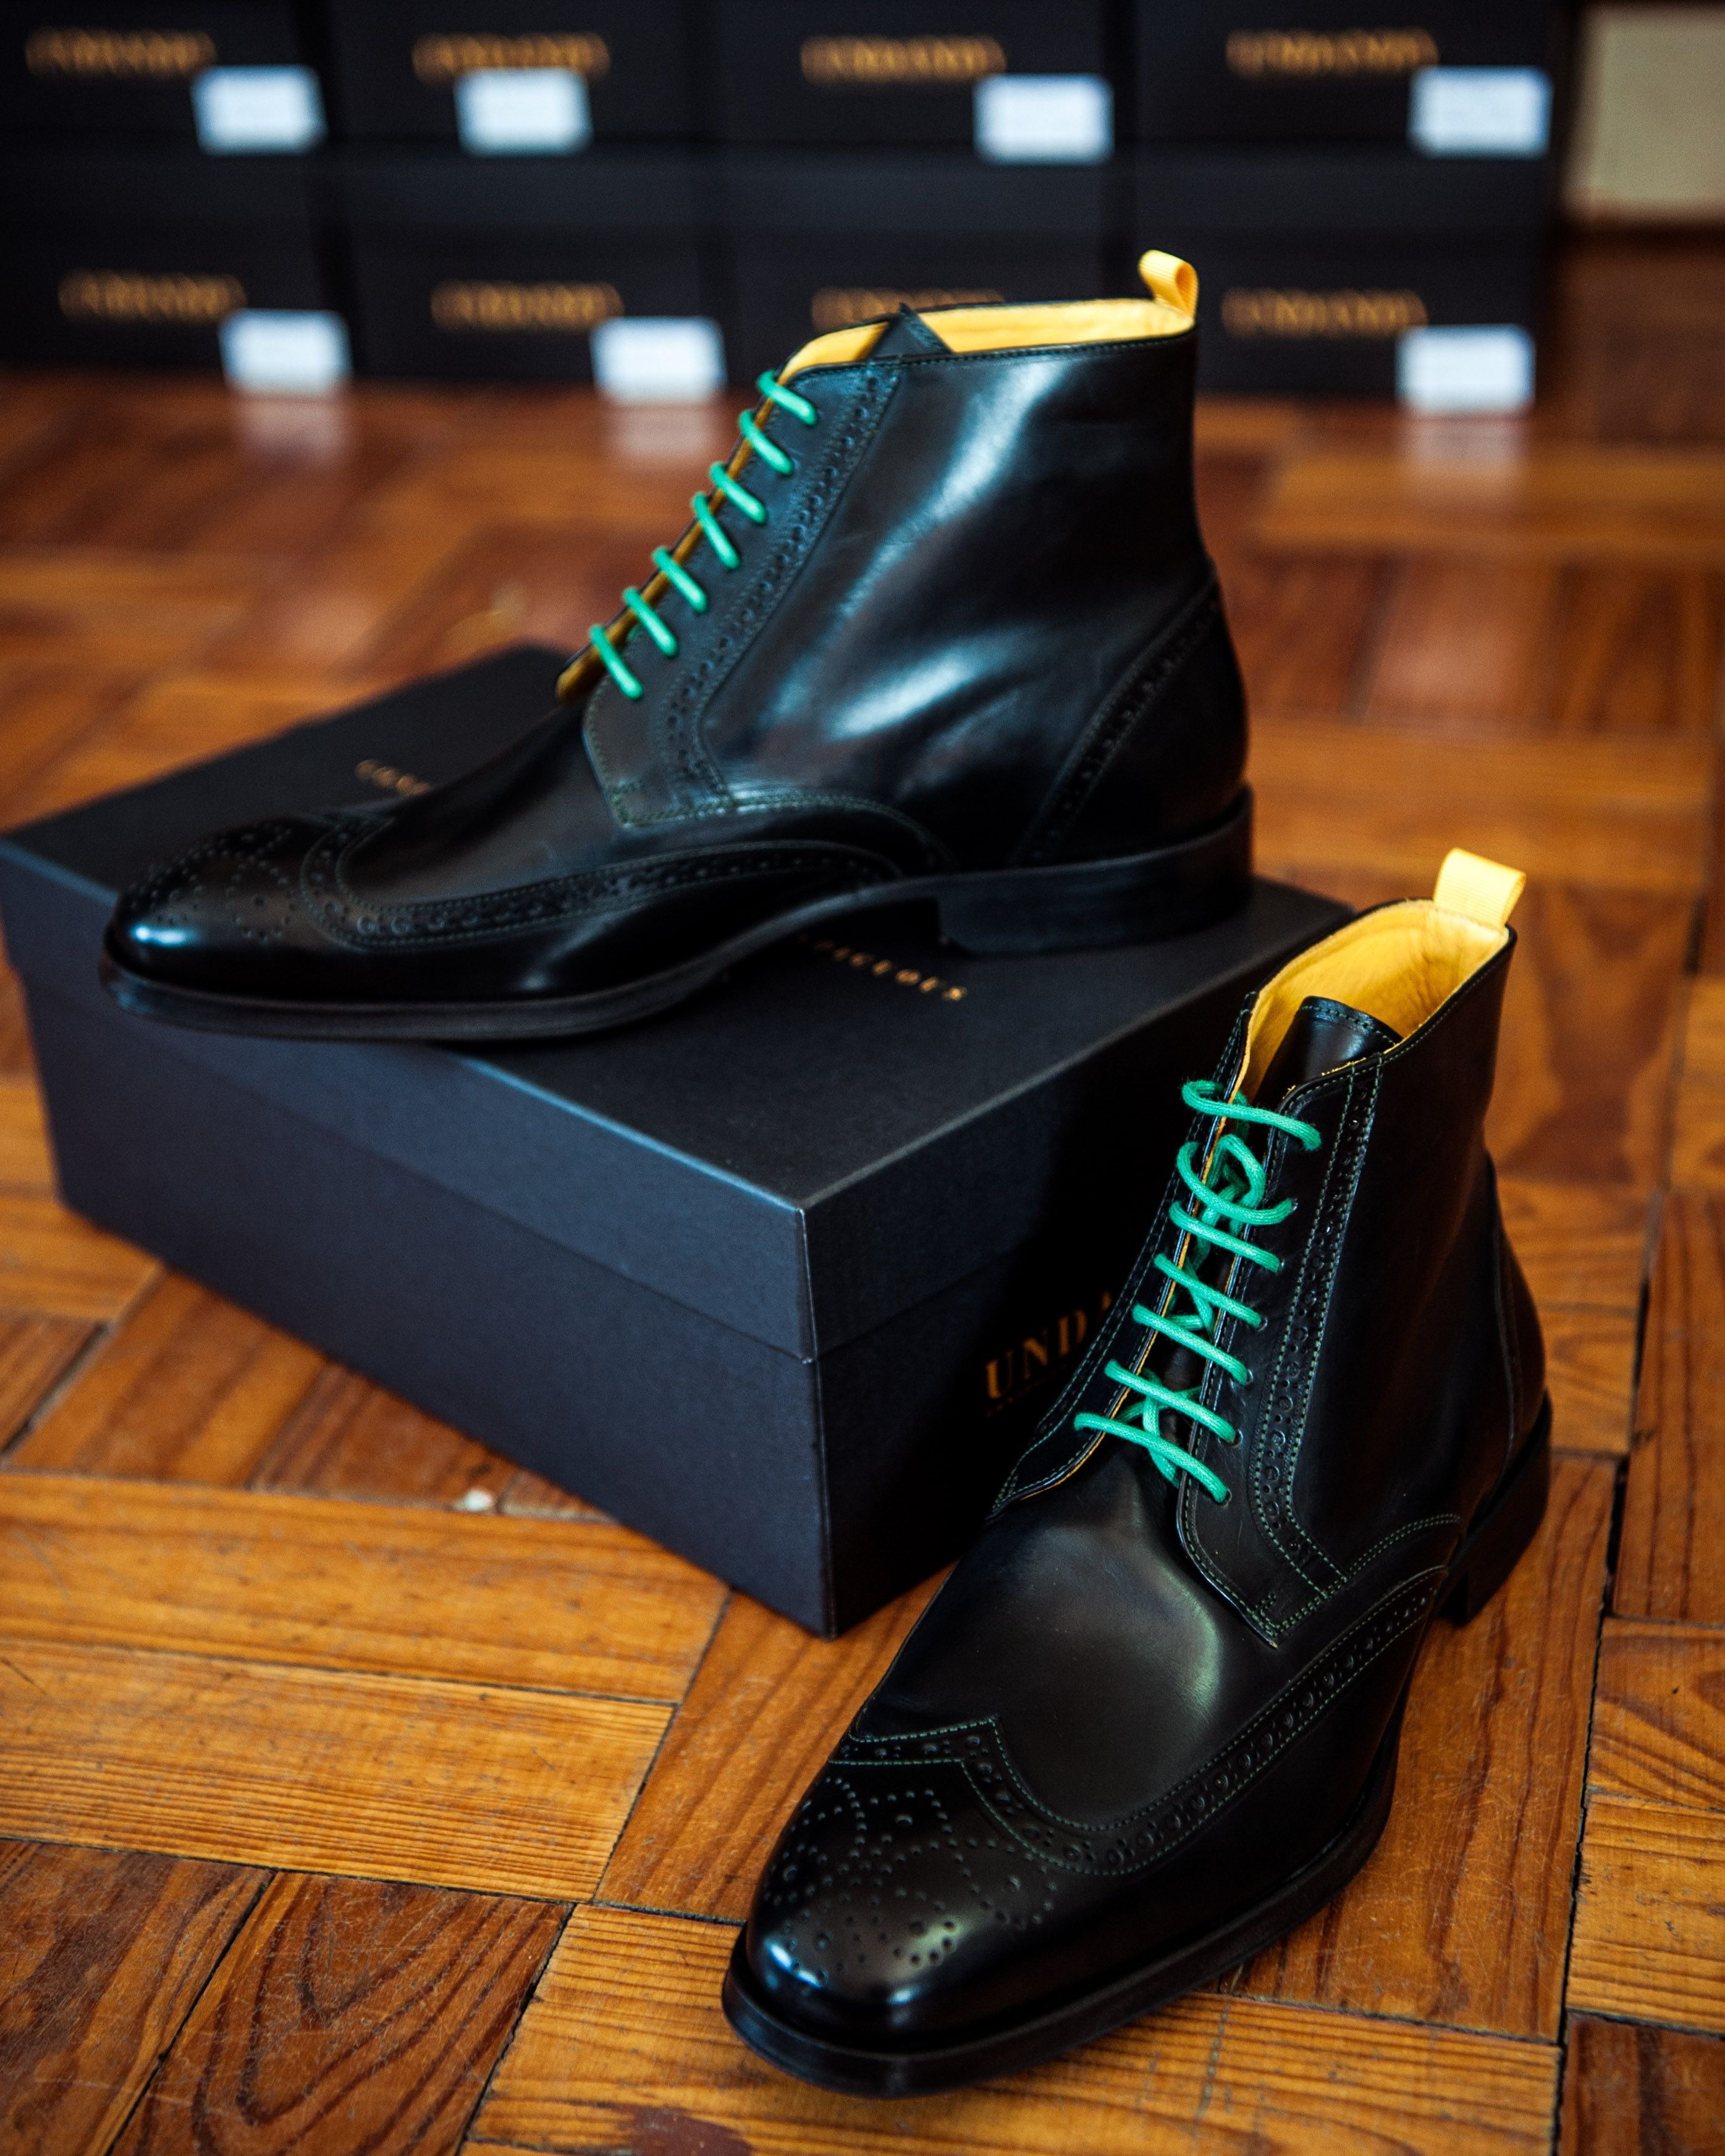 a589d392ca5 Undandy Custom Made Handcrafted Dress Shoes for Men Boots Brogue Black Calf  leather Autumn Winter Style Men s Fashion